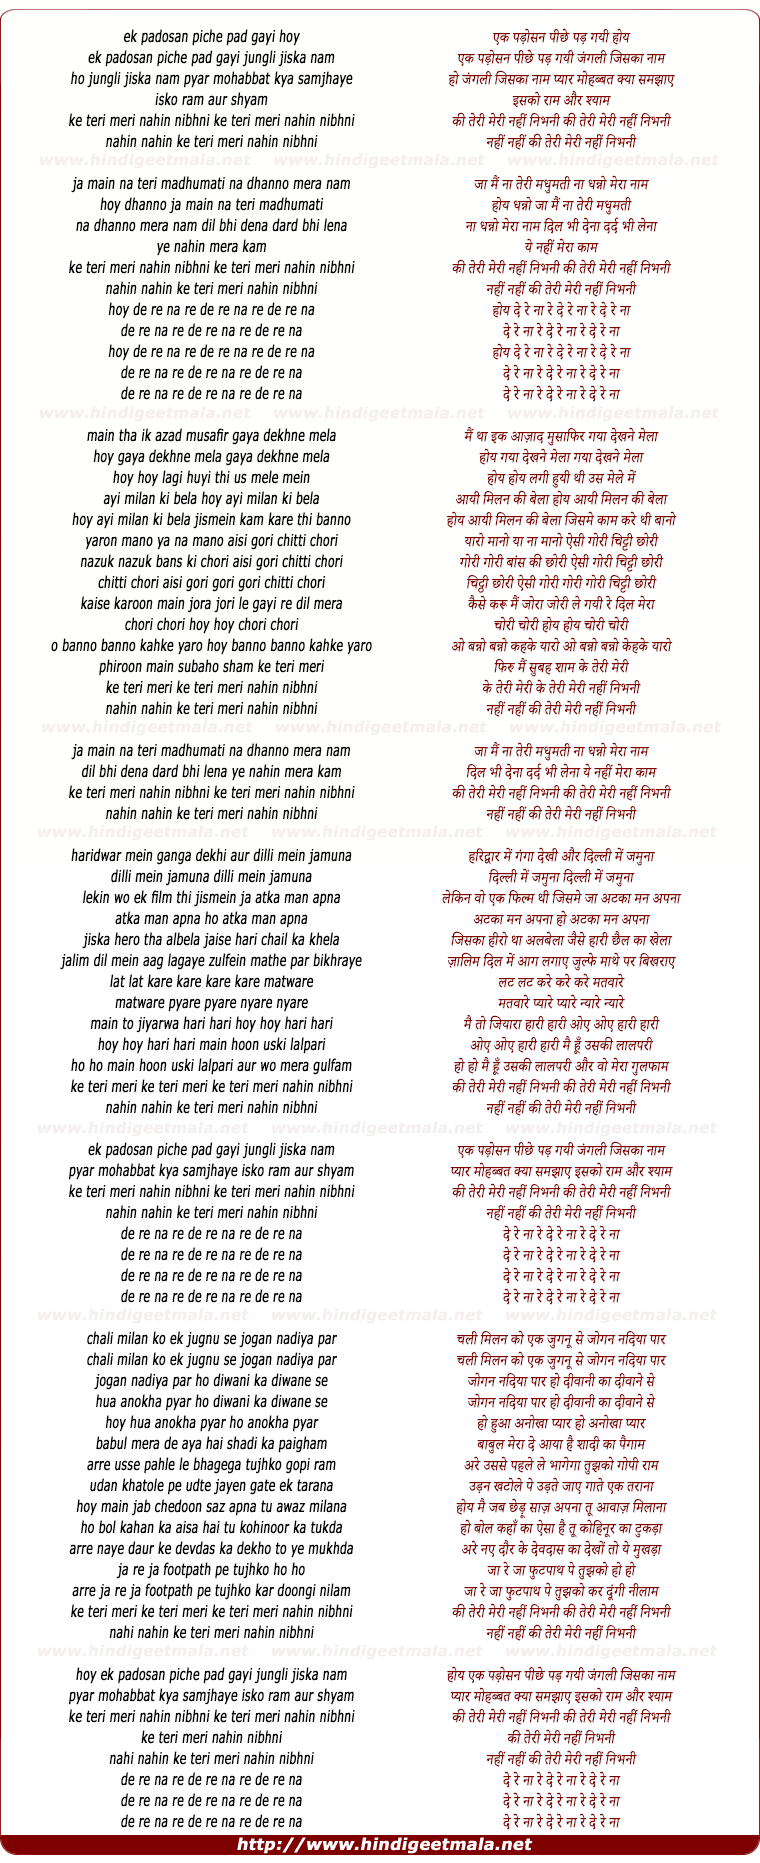 lyrics of song Ek Padosan Pichhe Pad Gayi Jungli Jiska Naam